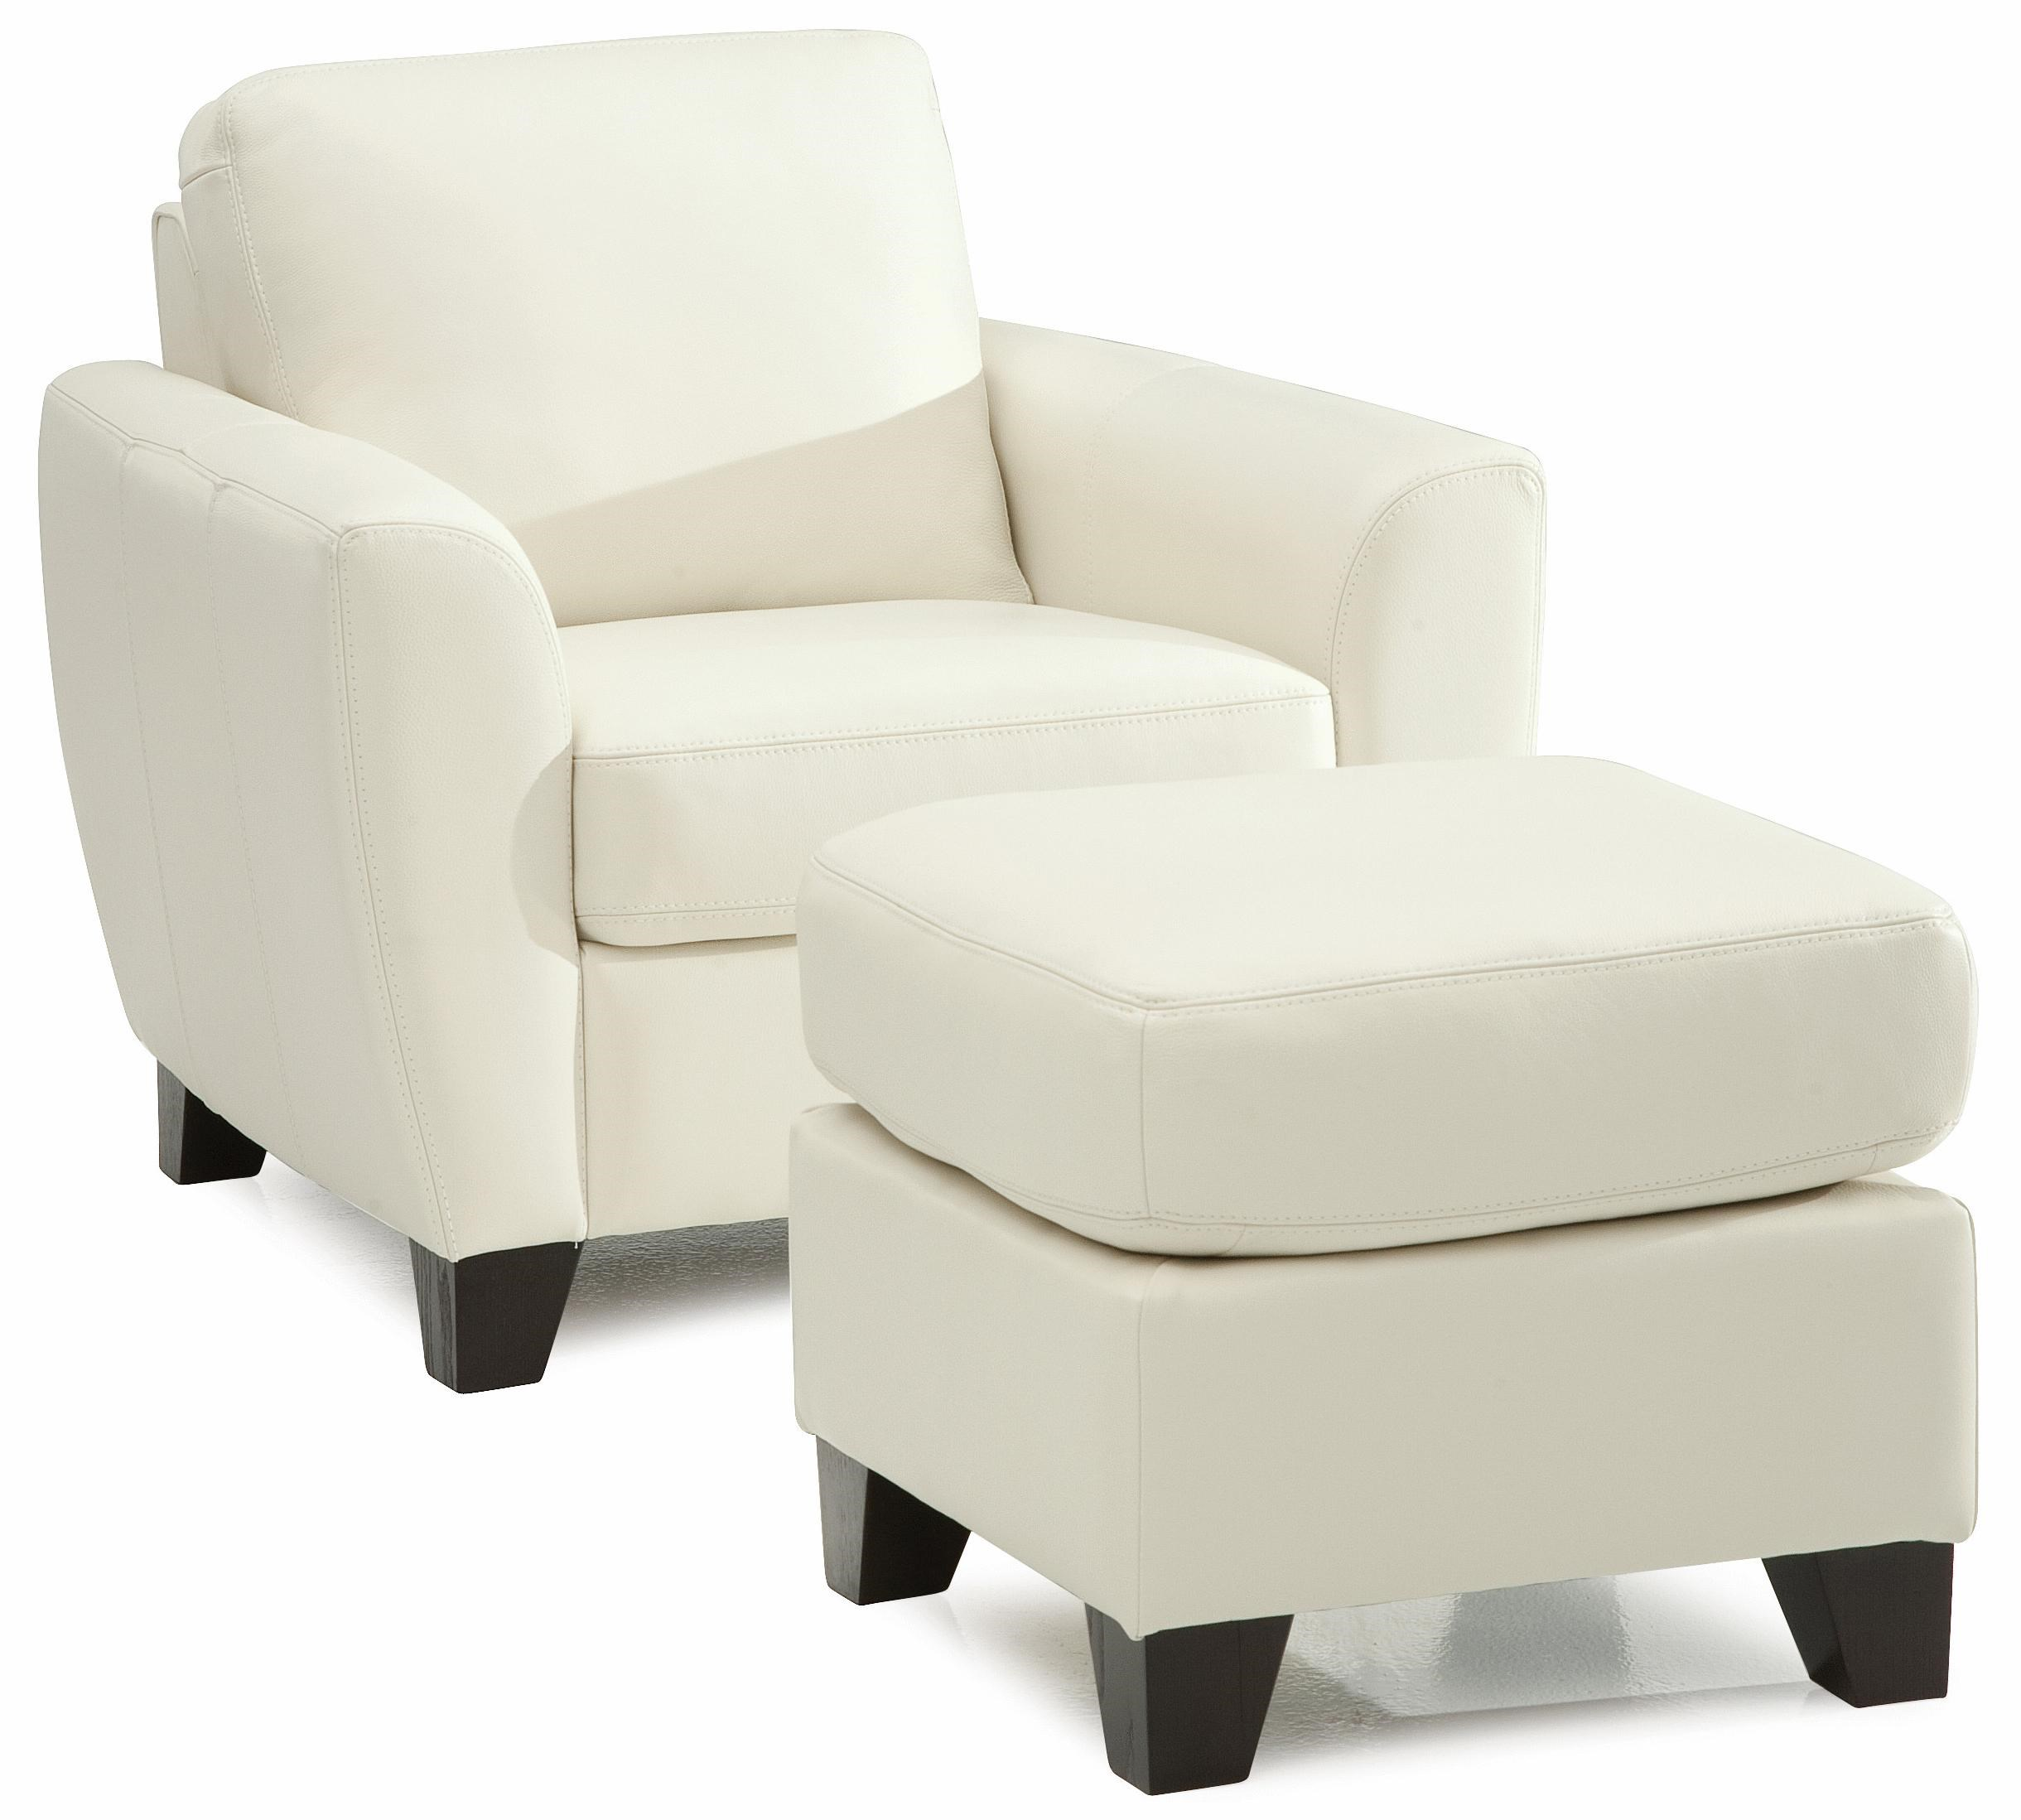 Attrayant Marymount Contemporary Stationary Chair And Ottoman With Wood Legs By  Palliser